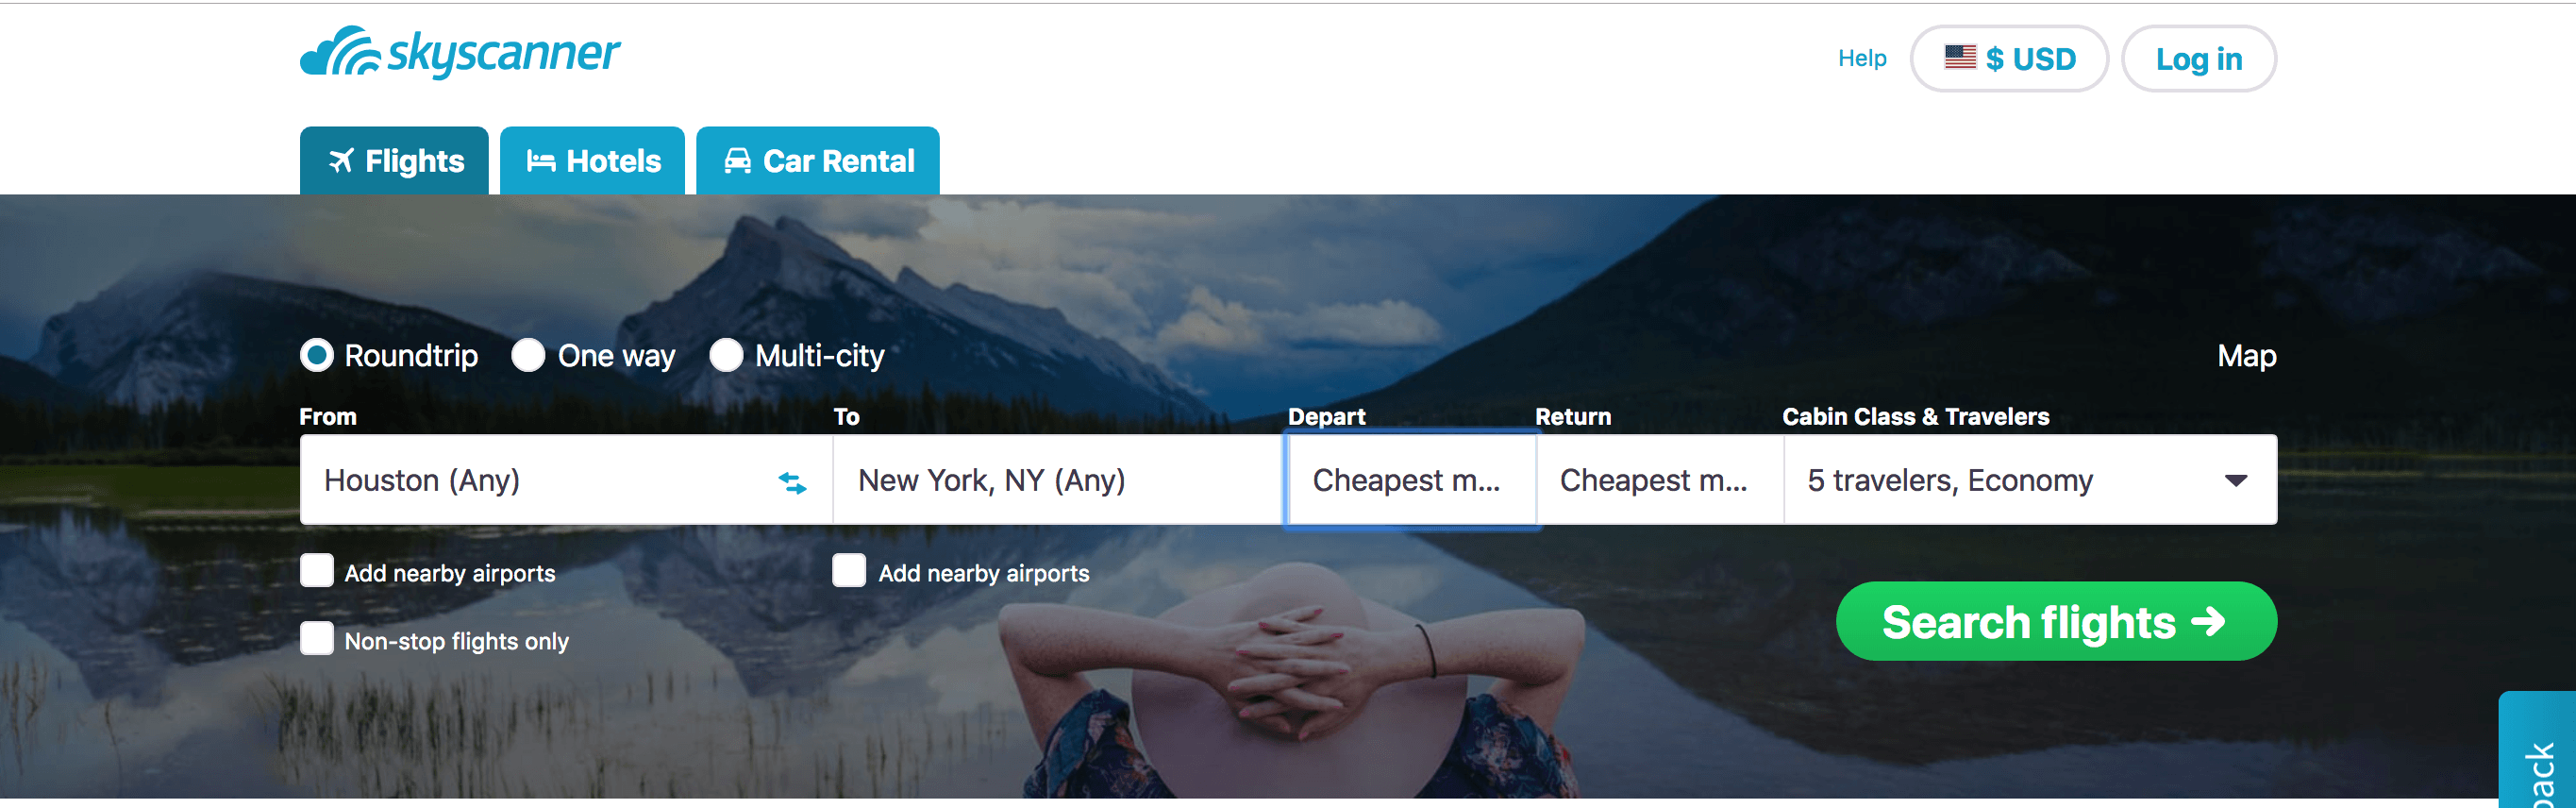 tips to find cheap airfare